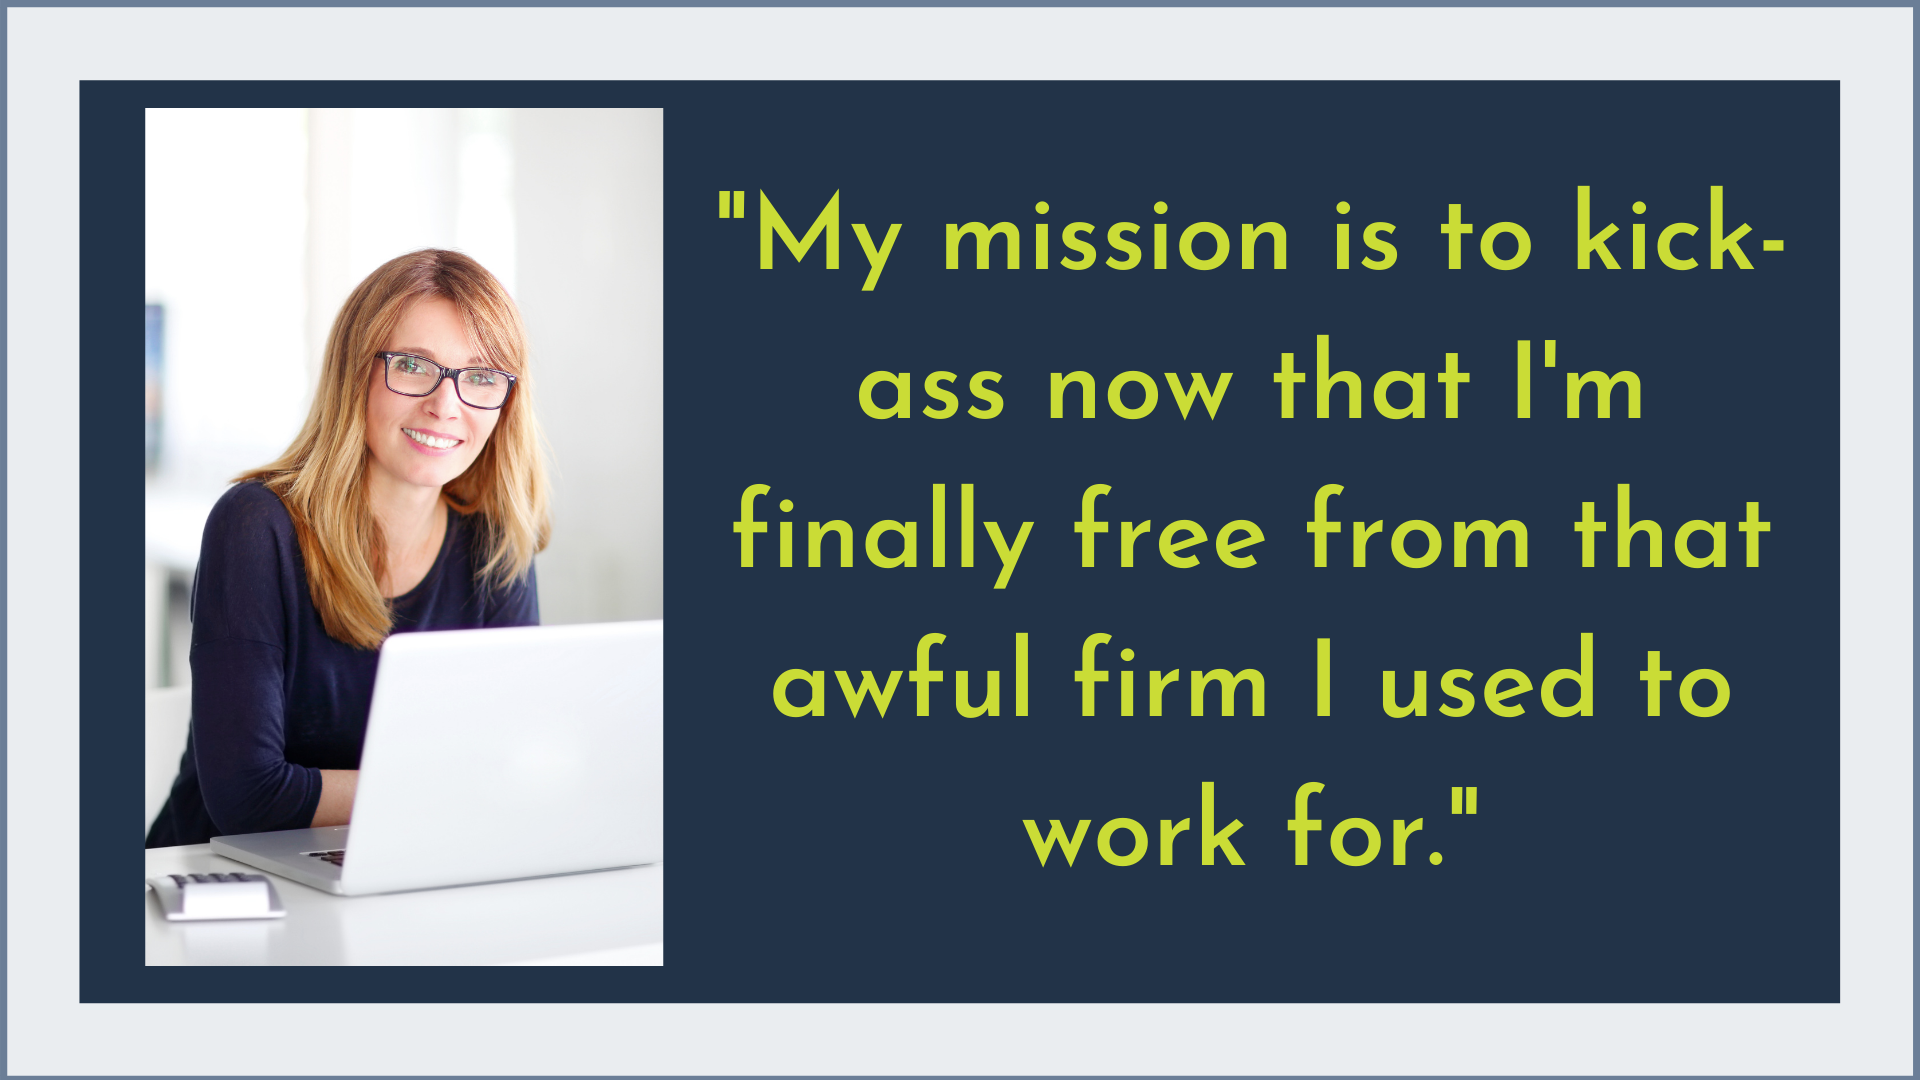 My mission is that I'm finally free from that awful firm I used to work for.